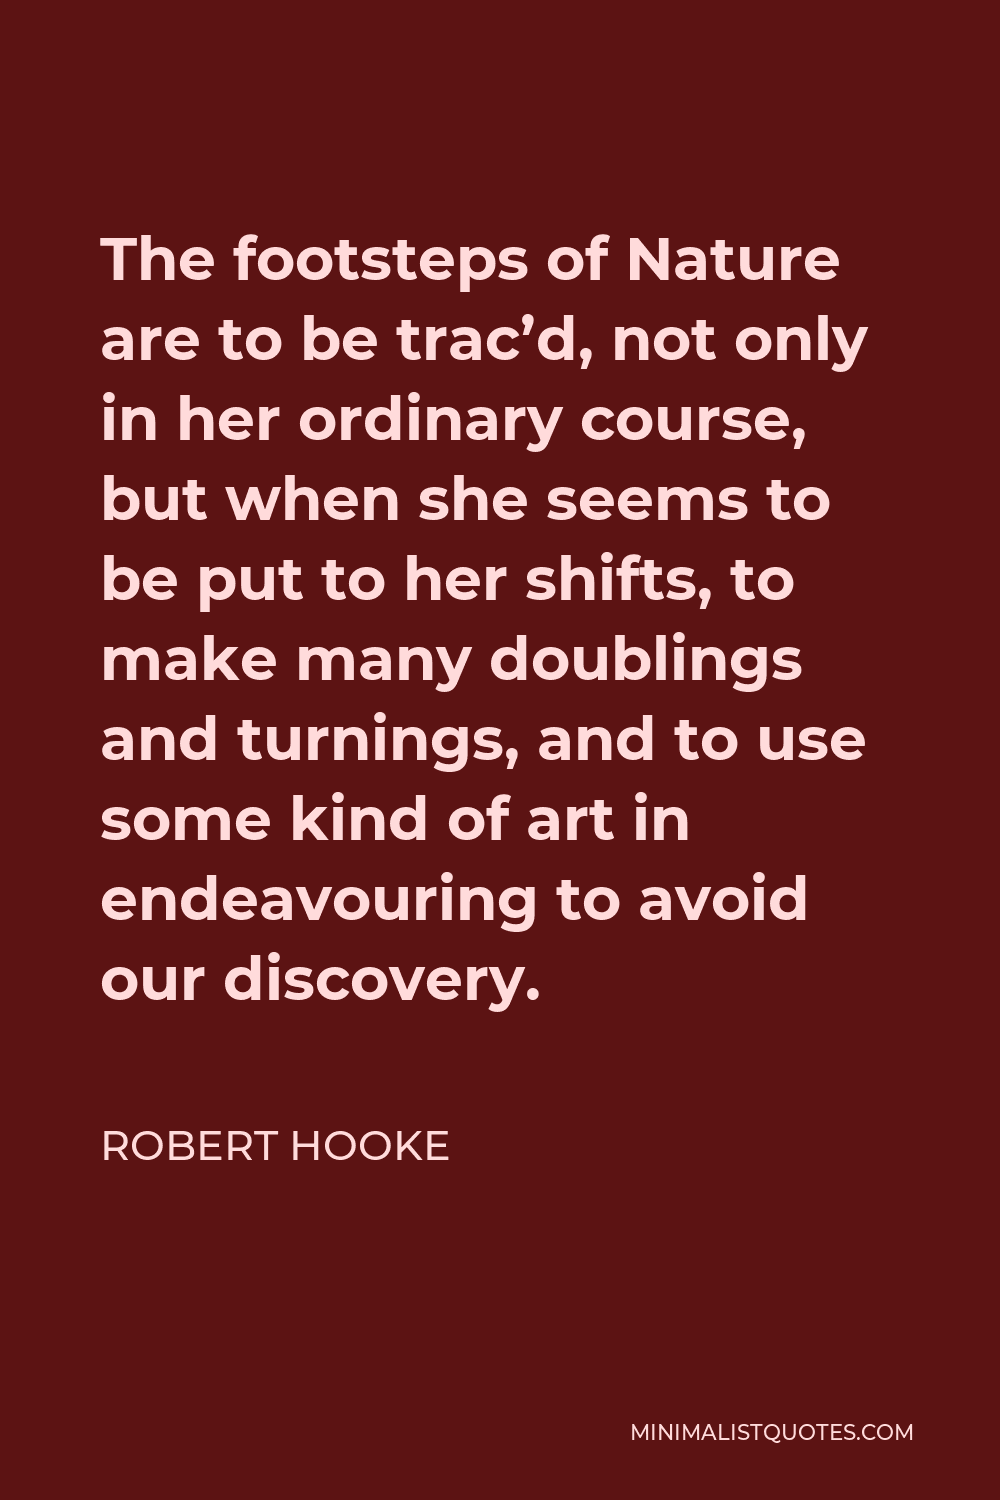 Robert Hooke Quote - The footsteps of Nature are to be trac'd, not only in her ordinary course, but when she seems to be put to her shifts, to make many doublings and turnings, and to use some kind of art in endeavouring to avoid our discovery.